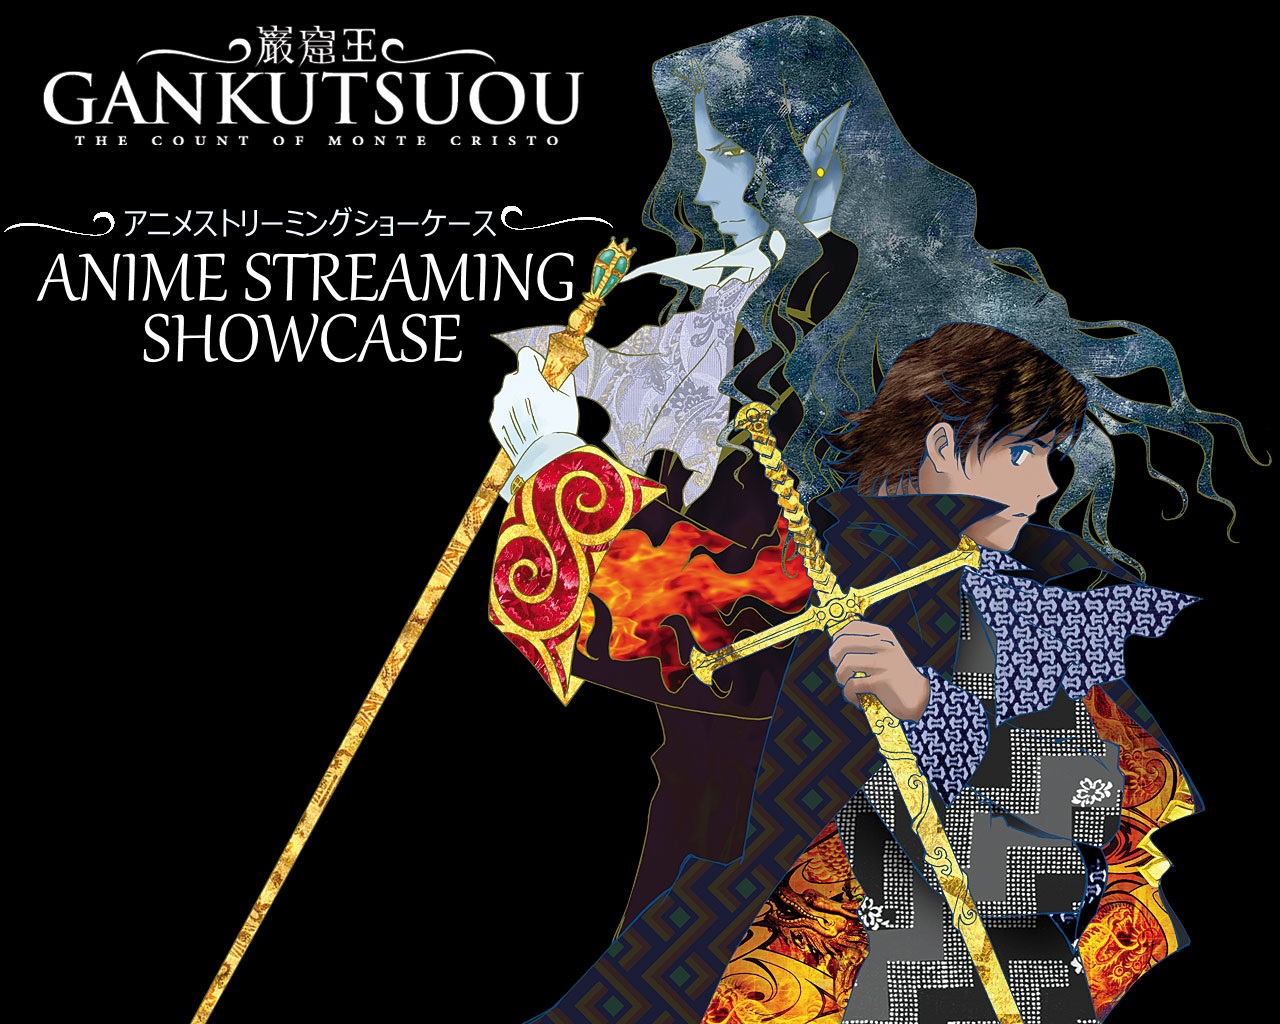 gankutsuou:, gankutsuou: The count of monte cristo, the count of monte cristo, albert, edmond, alexandre dumas, anime streaming showcase, anime, ASS, A.S.S.,